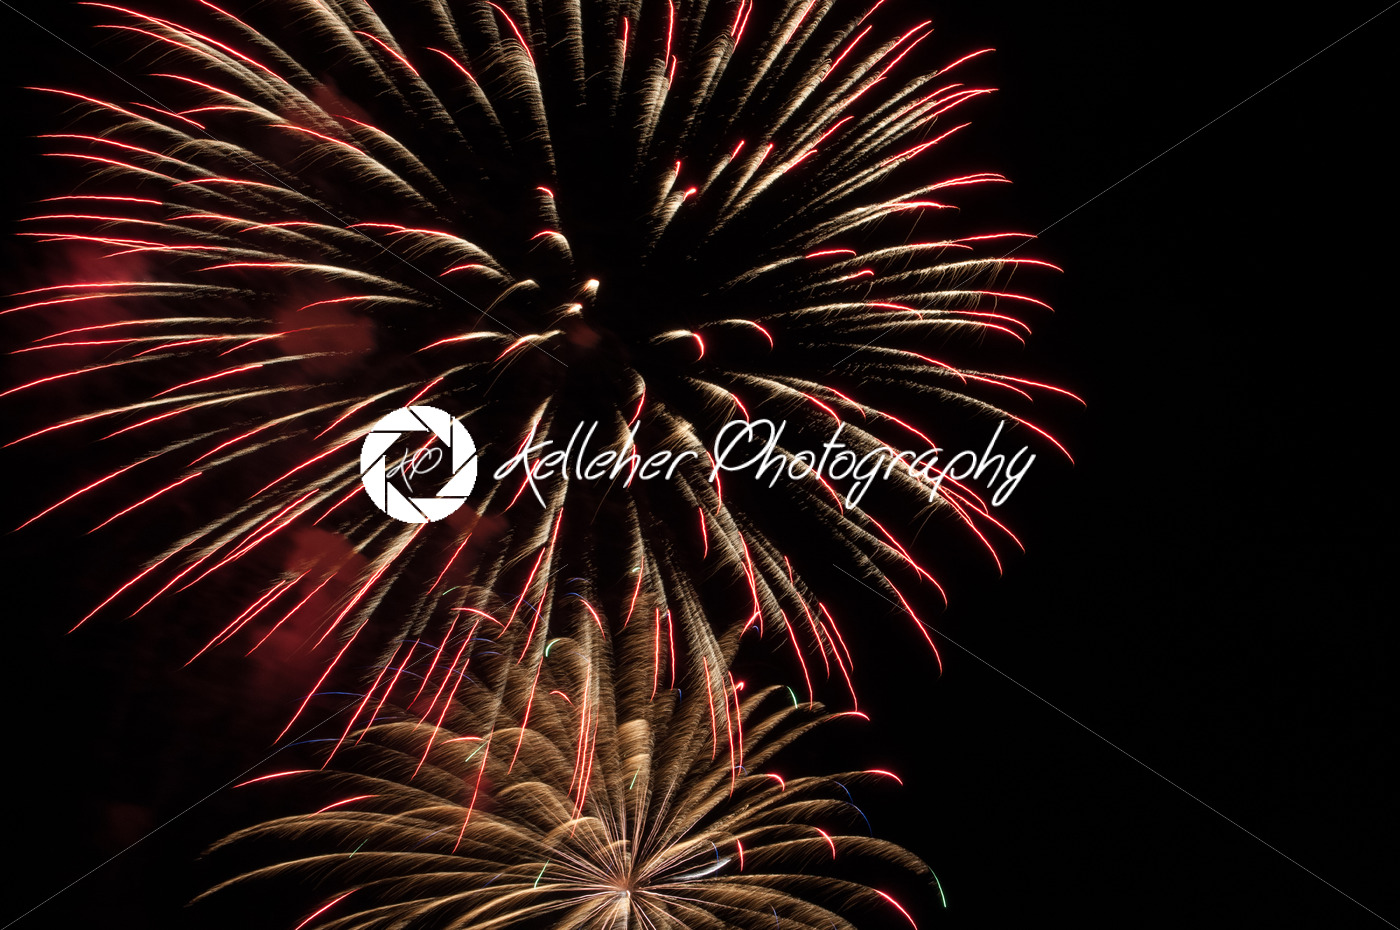 Fireworks light up the sky with dazzling display - Kelleher Photography Store